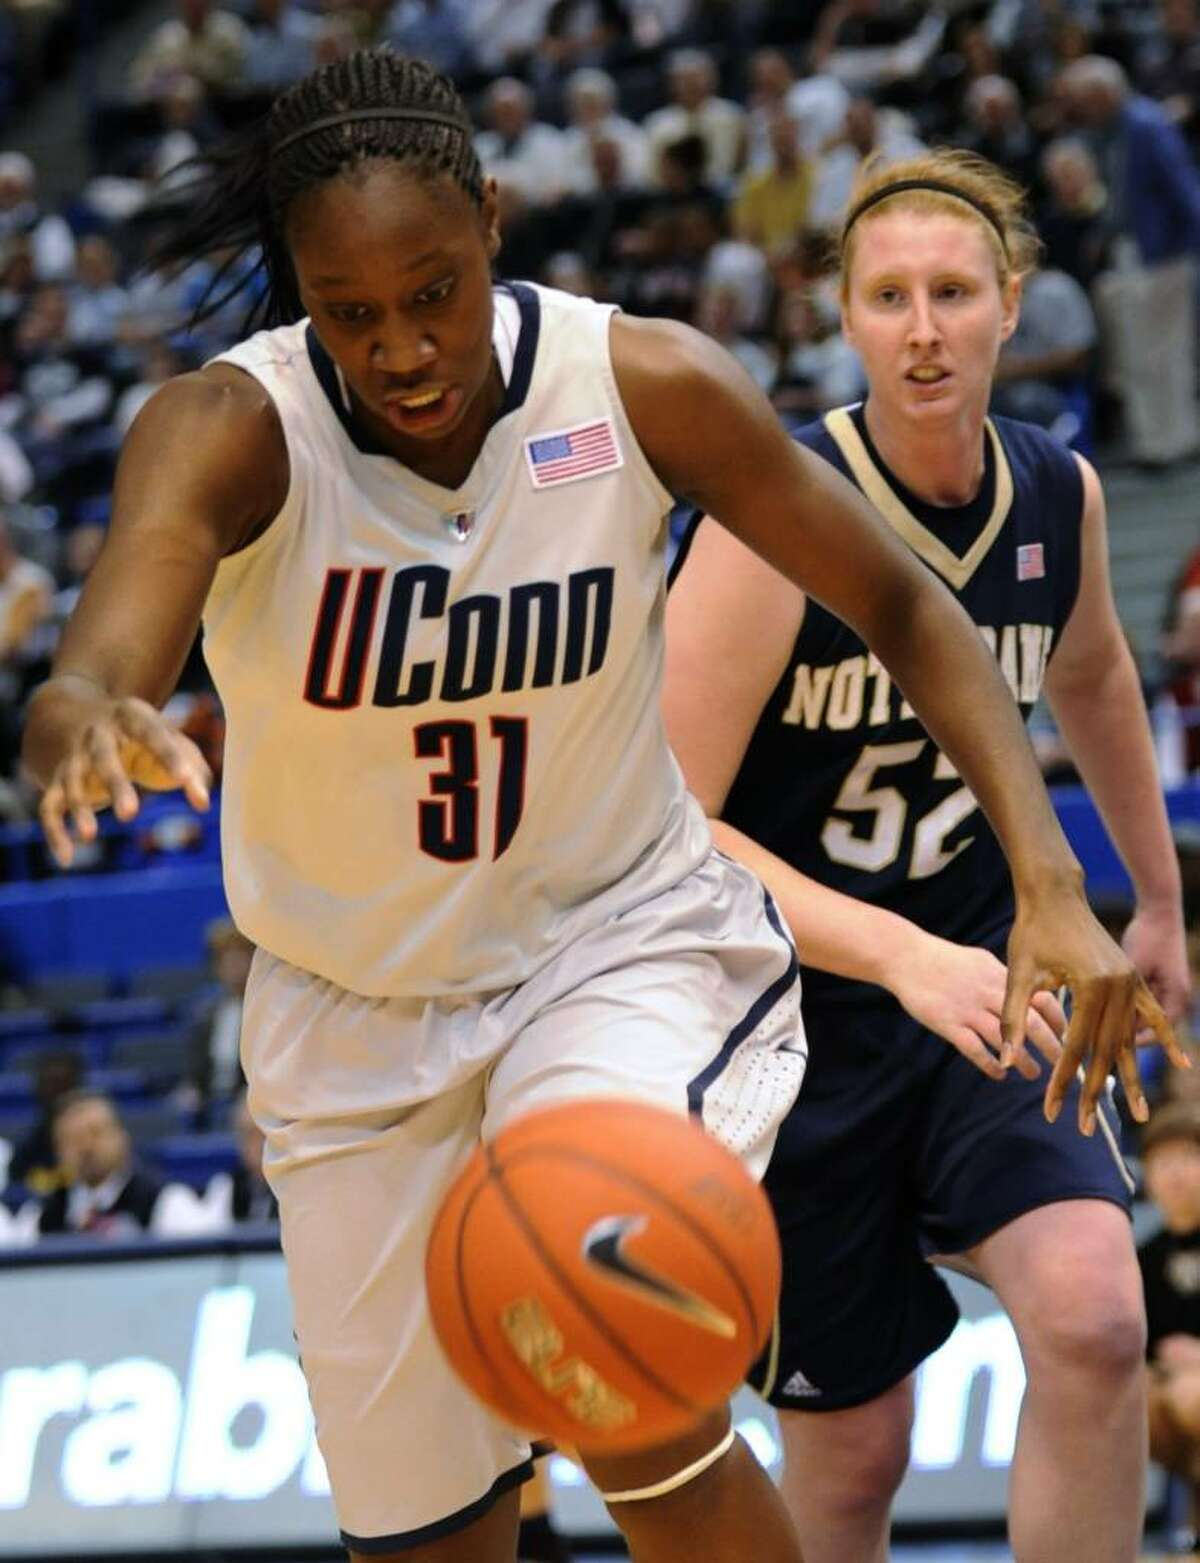 Connecticut's Tina Charles, left, and Notre Dame's Erica Wiliamson go after a loose ball during the first half of an NCAA college basketball game in the semifinals of the Big East tournament in Hartford, Conn., Monday, March 8, 2010. (AP Photo/Bob Child)